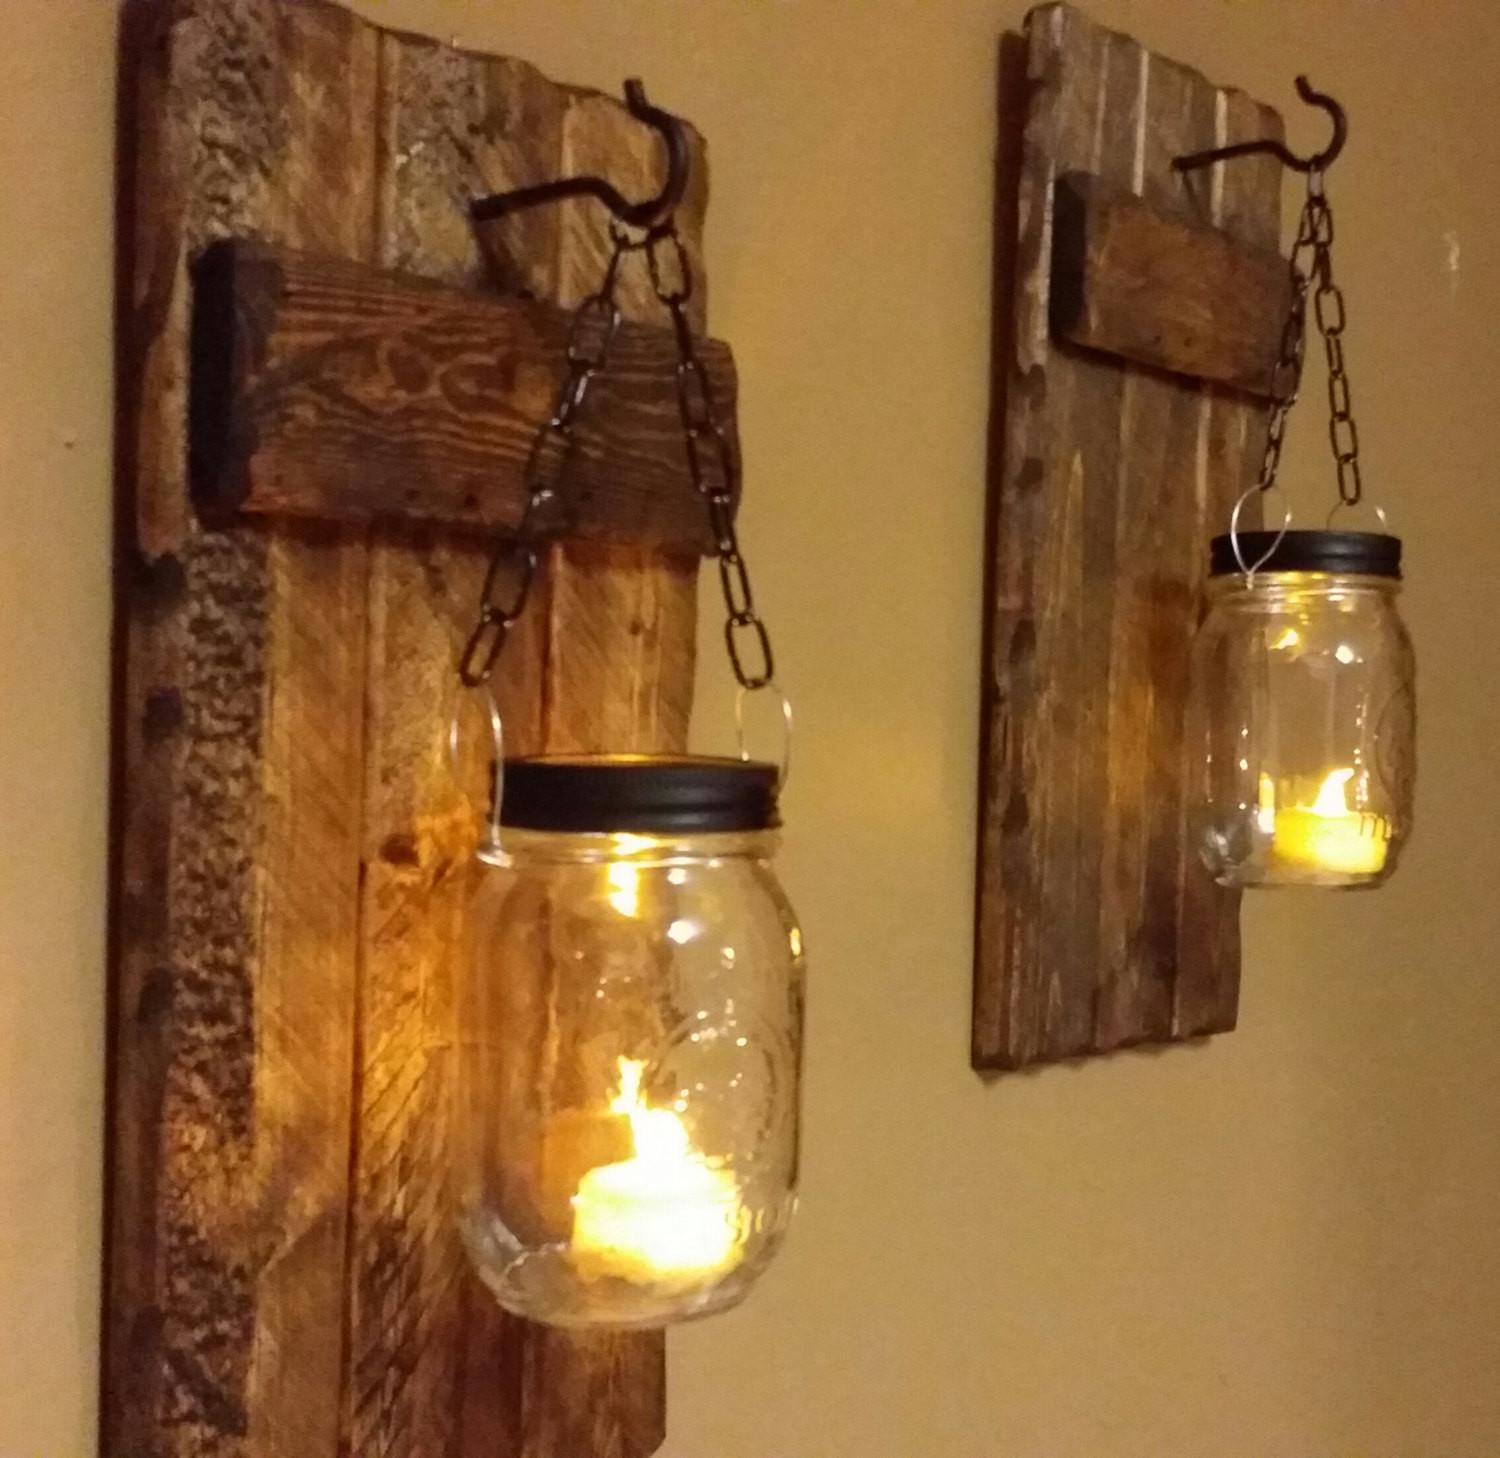 Wood Sconces Rustic Home Decor Candle Holder